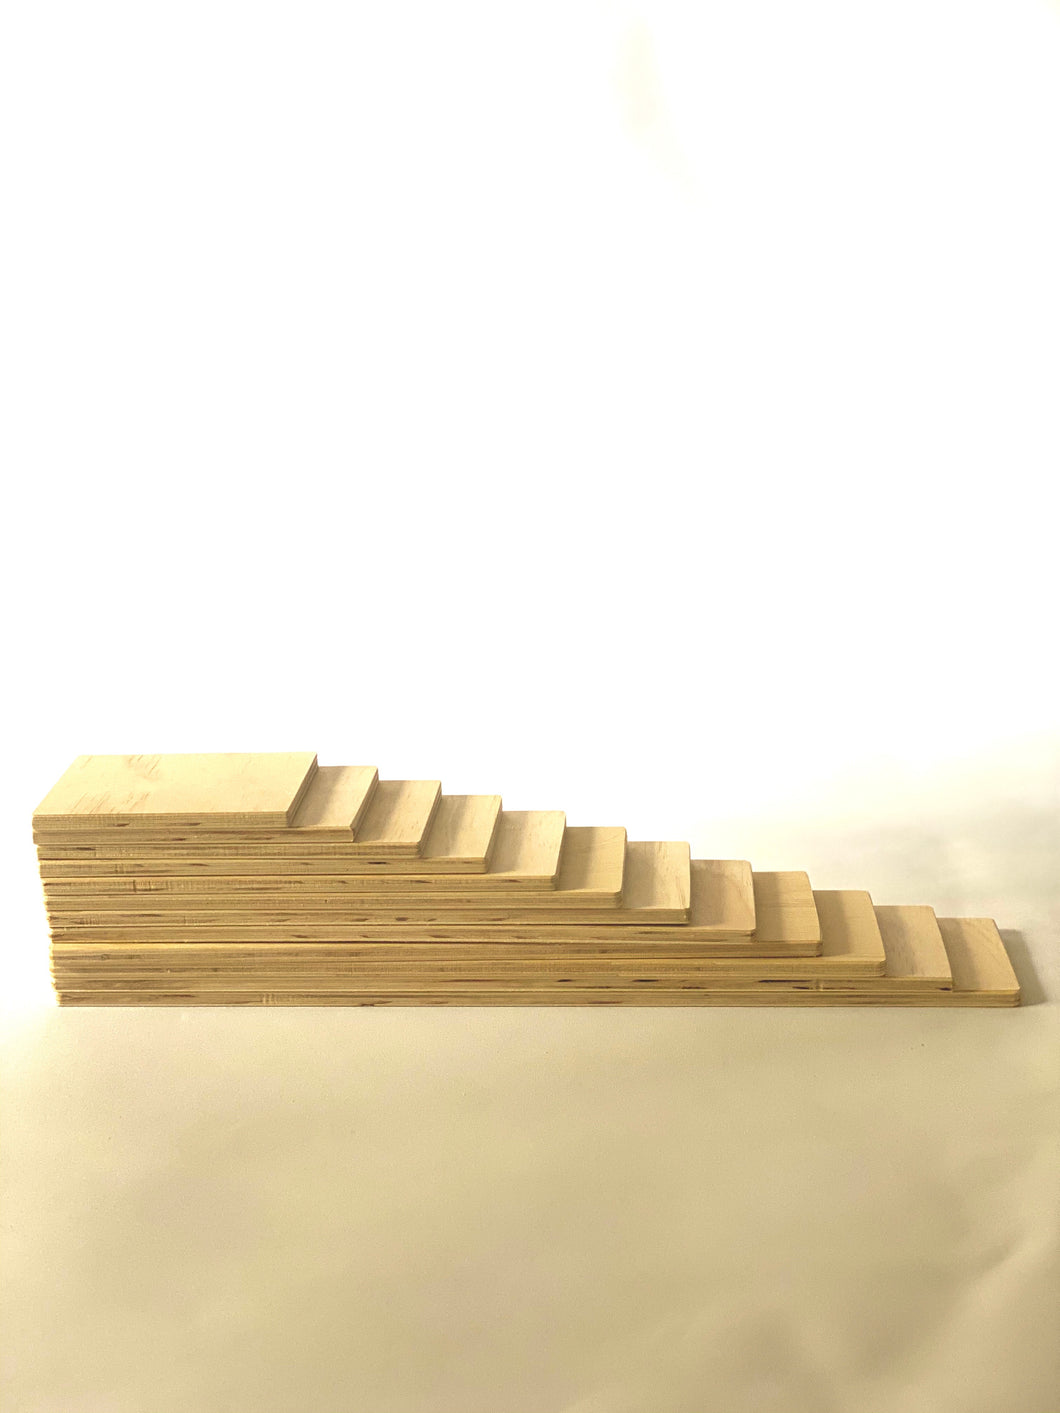 Wooden counting planks